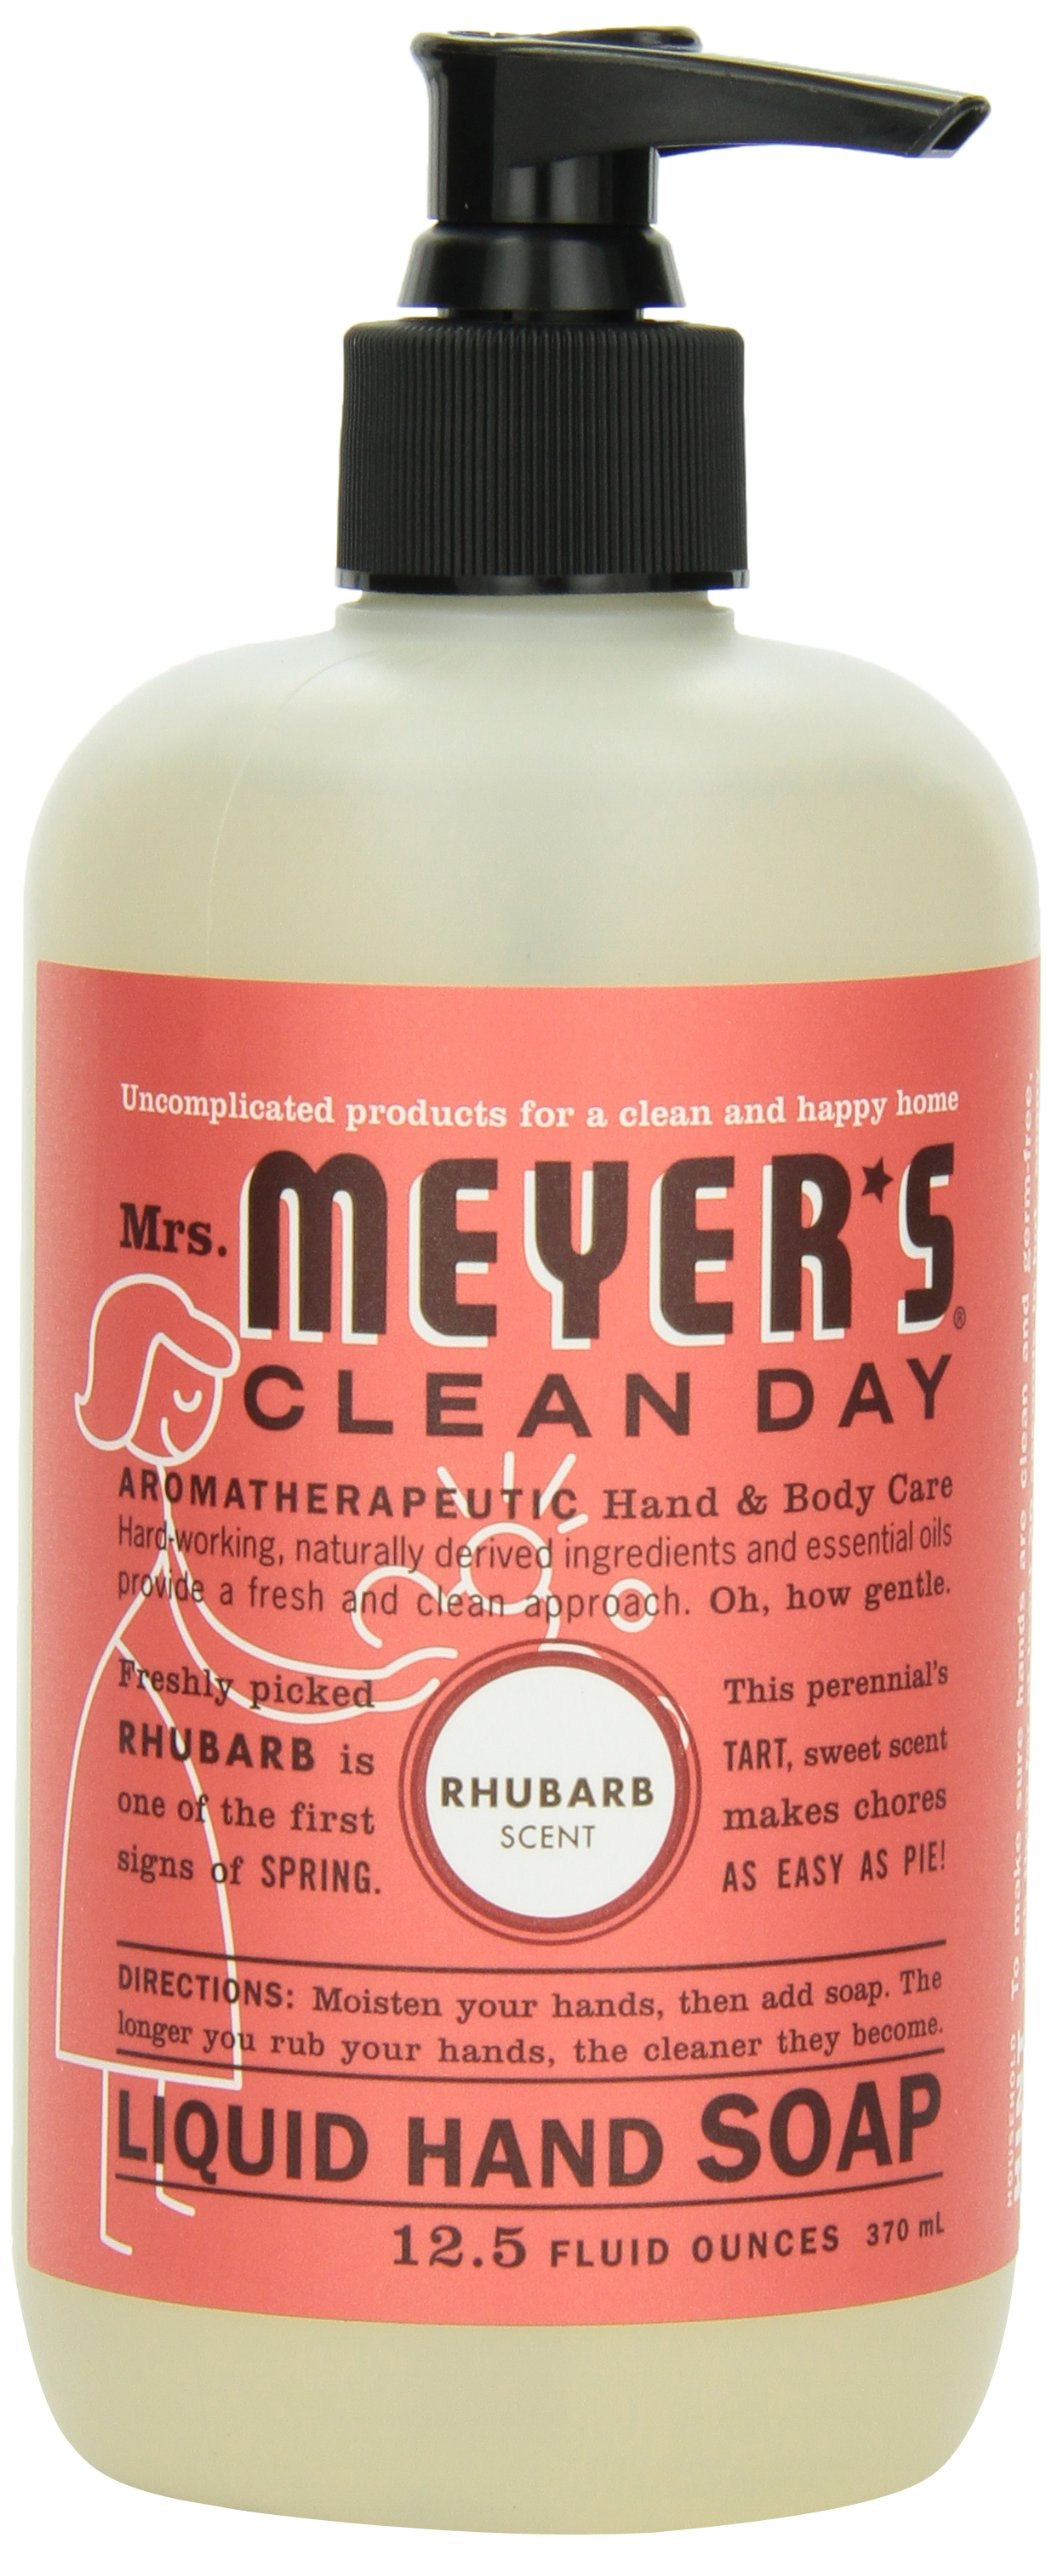 Mrs. Meyer's Clean Day Liquid Hand Soap, Rhubarb, 12.5 Fluid Ounce (Pack of 2)